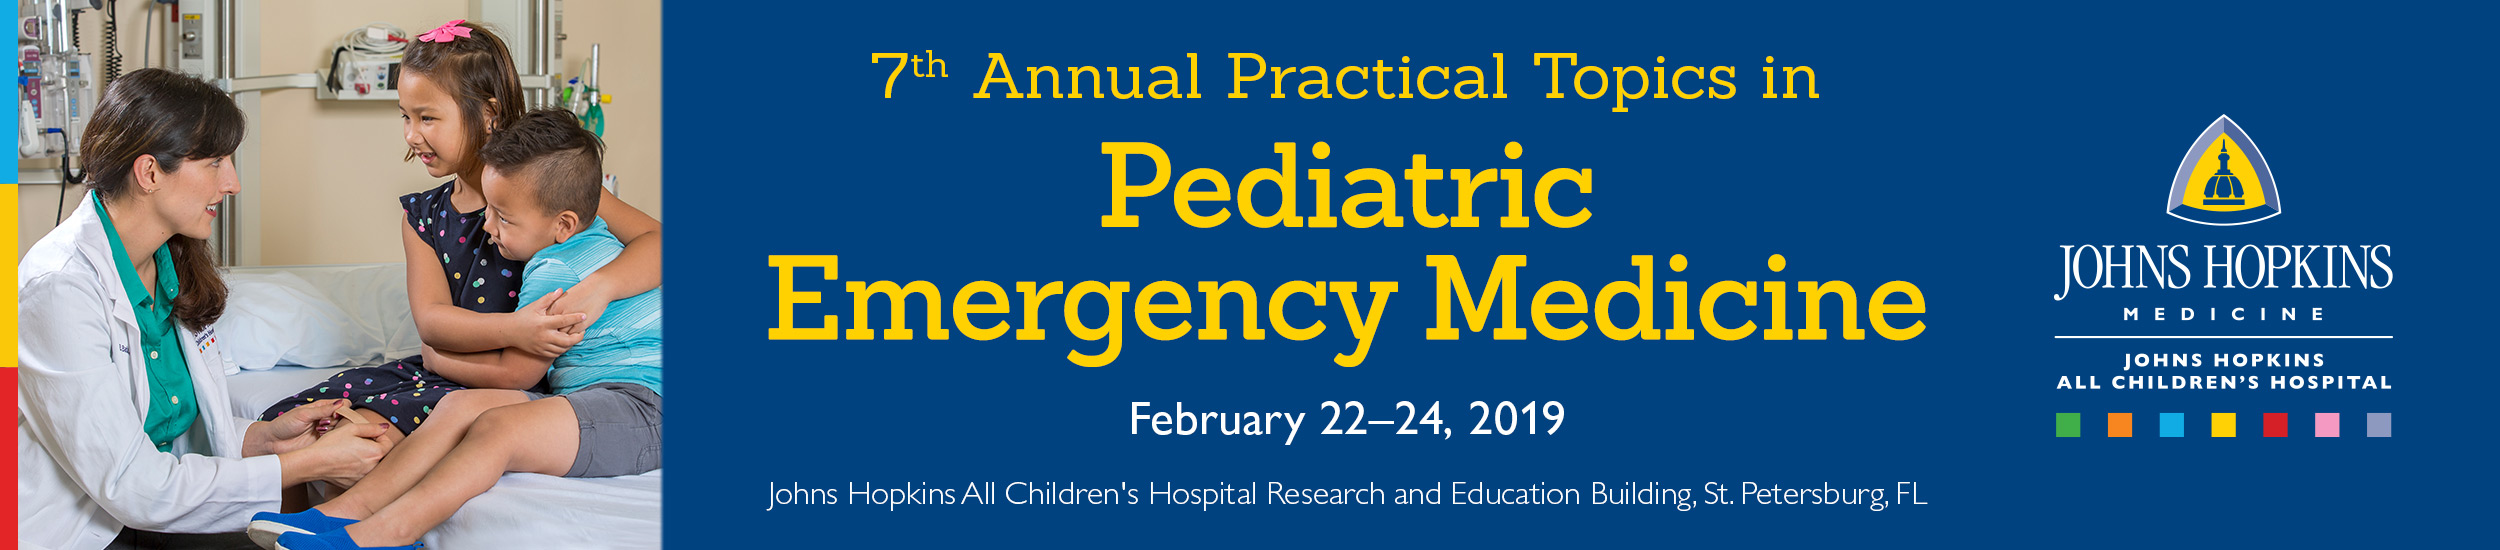 JHACH 7th Annual Practical Topics in Pediatric Emergency Medicine Banner